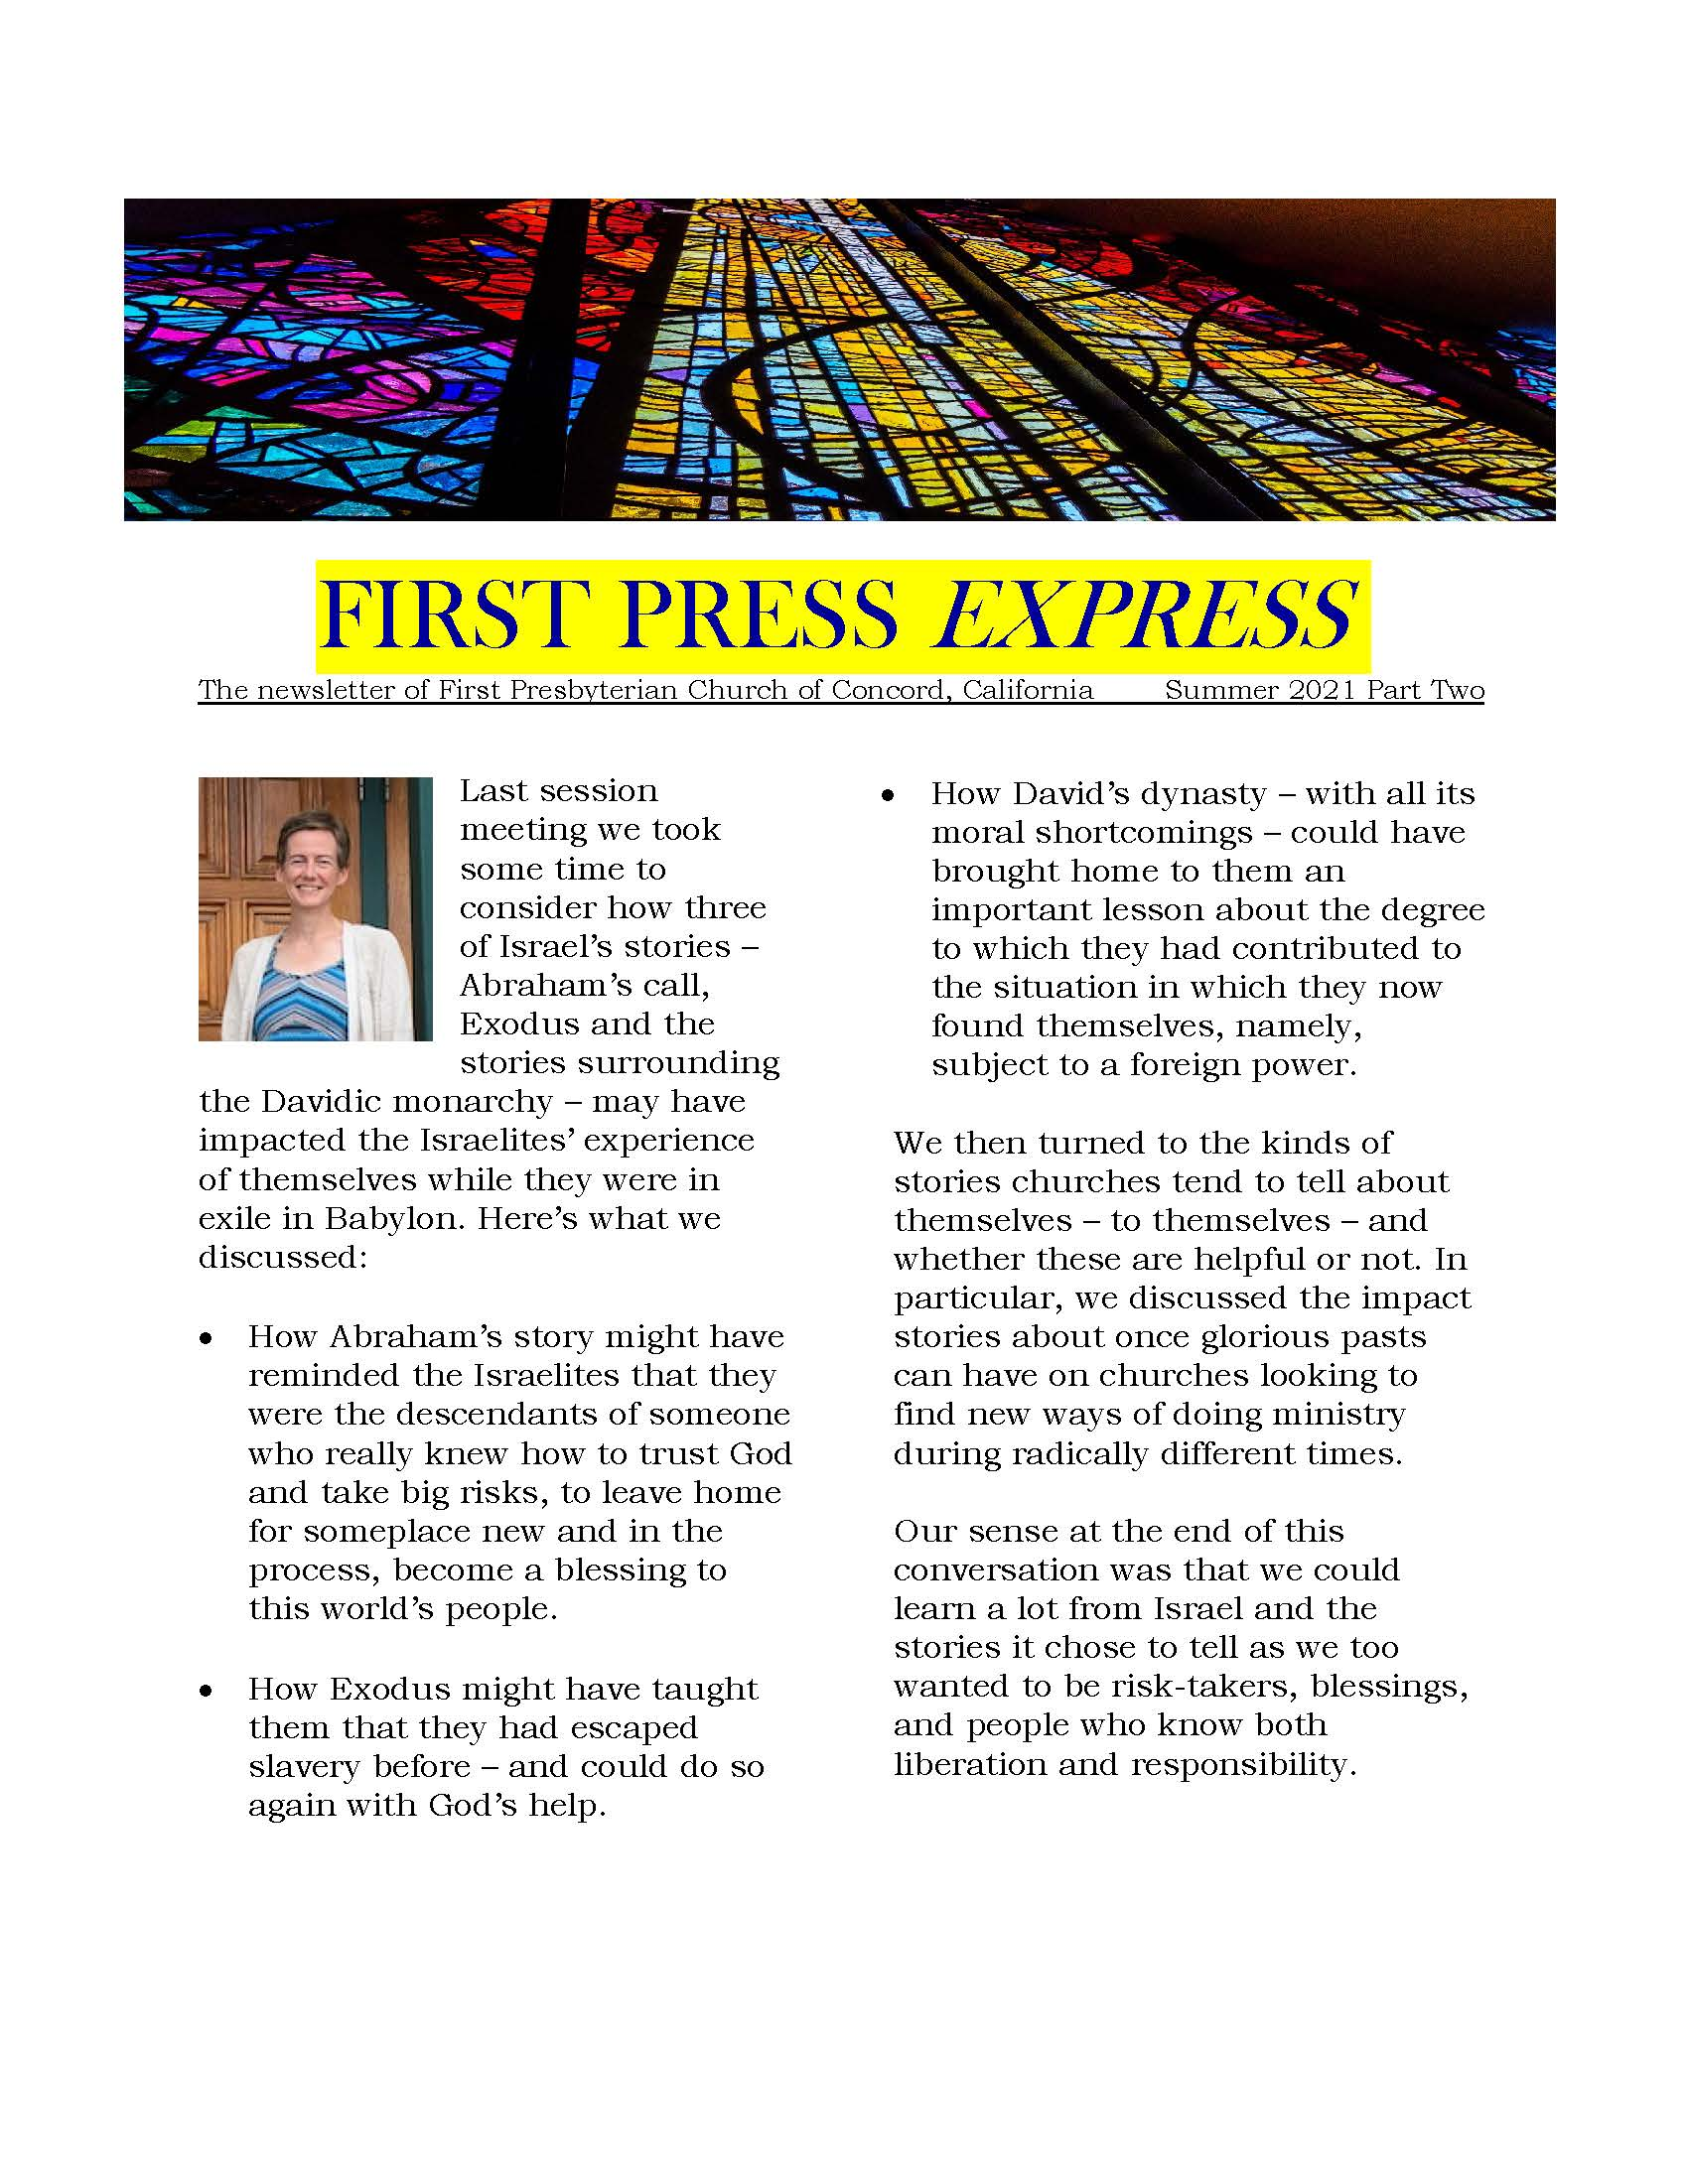 cover of first press express with headshot of Pastor Johanna and banner image of stained glass